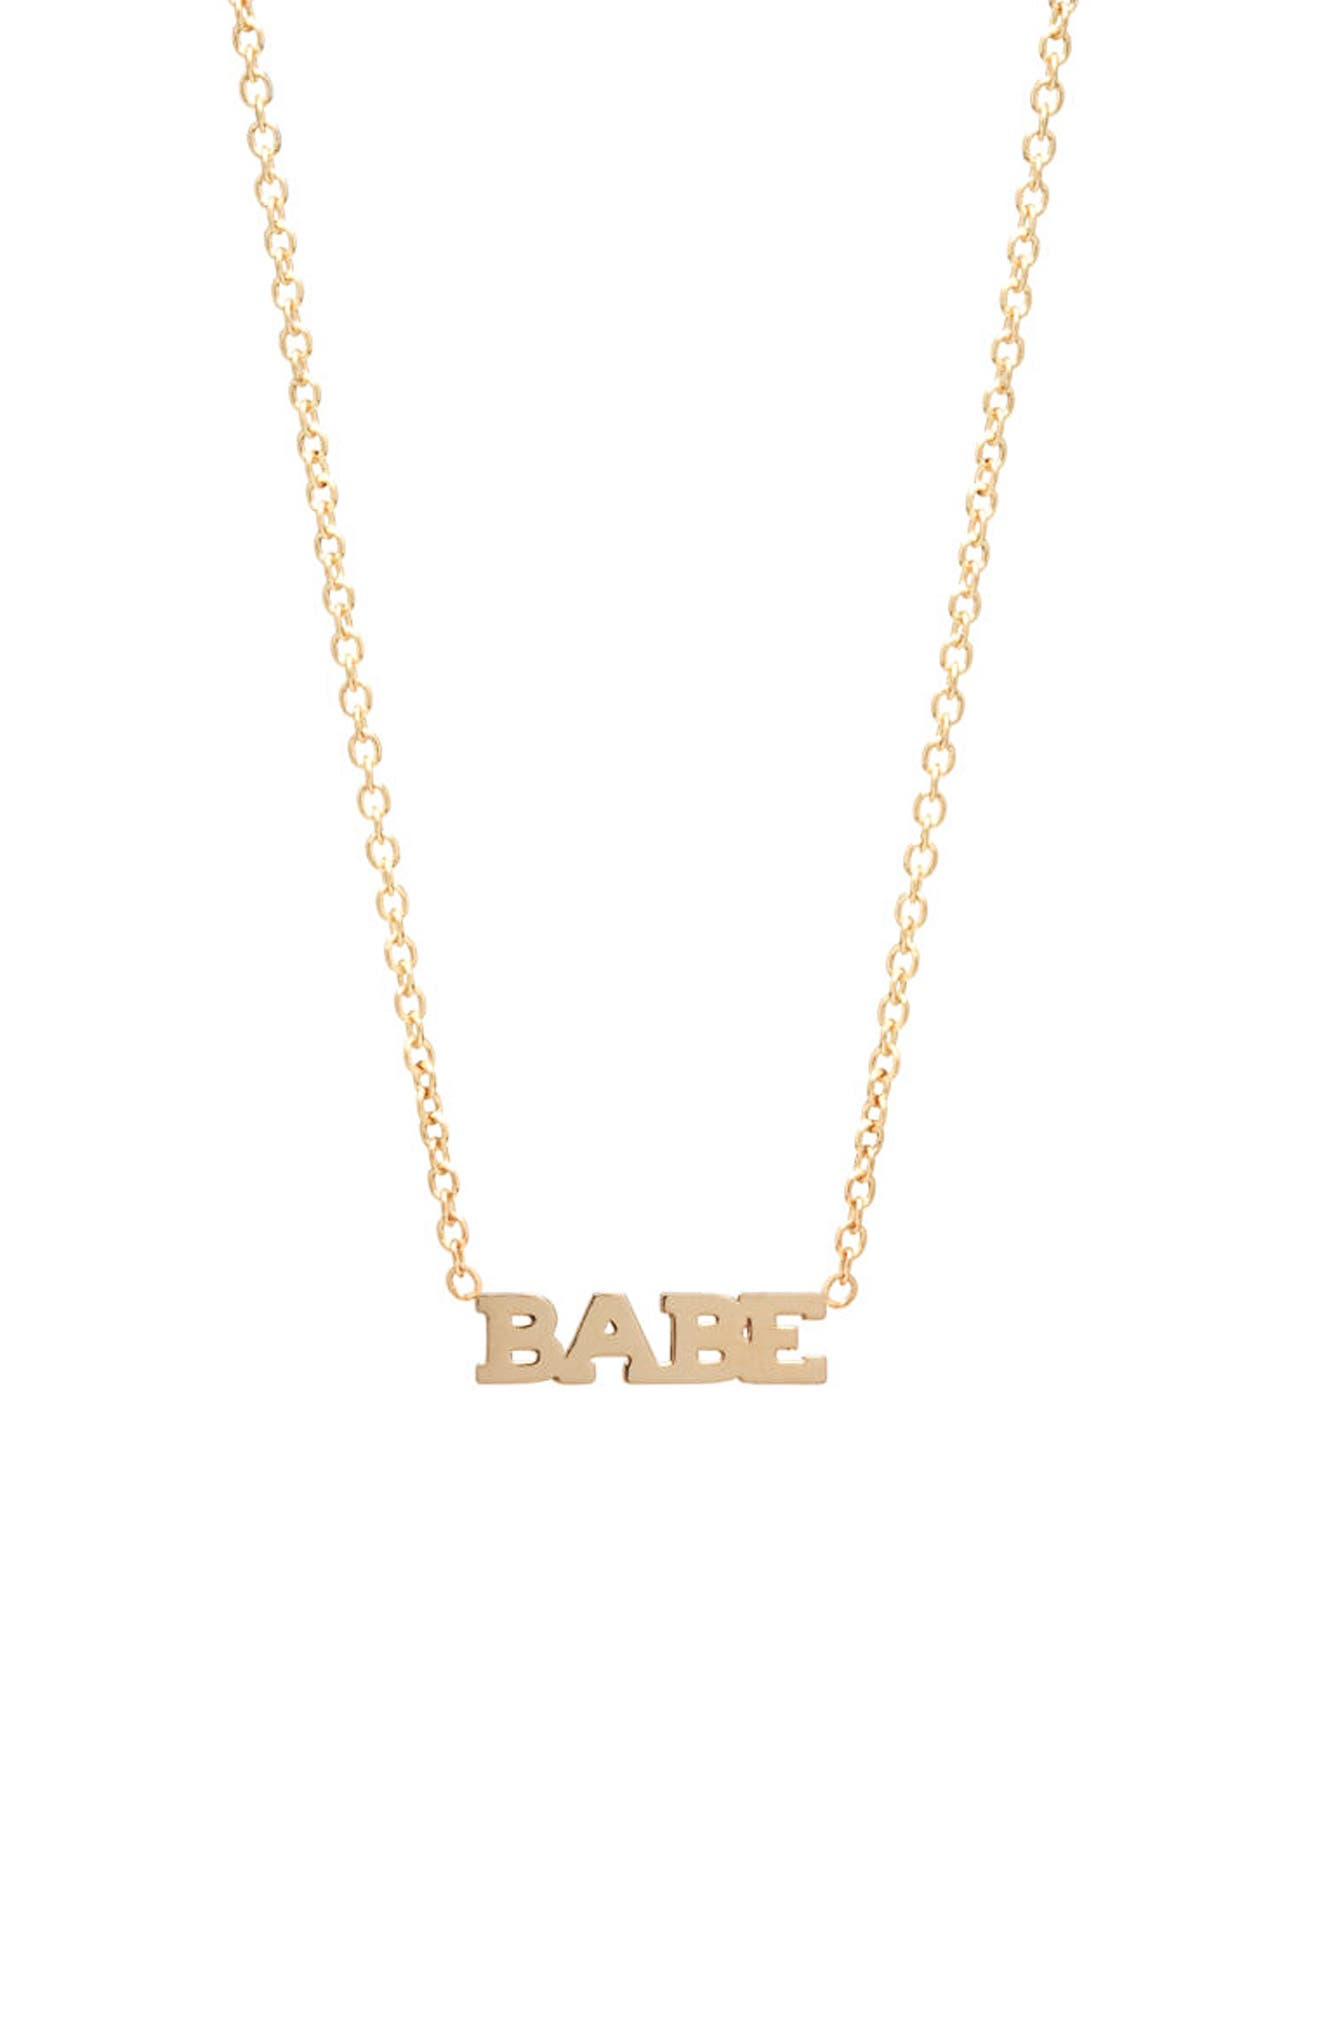 Itty Bitty Typographical Pendant Necklace,                         Main,                         color, YELLOW GOLD